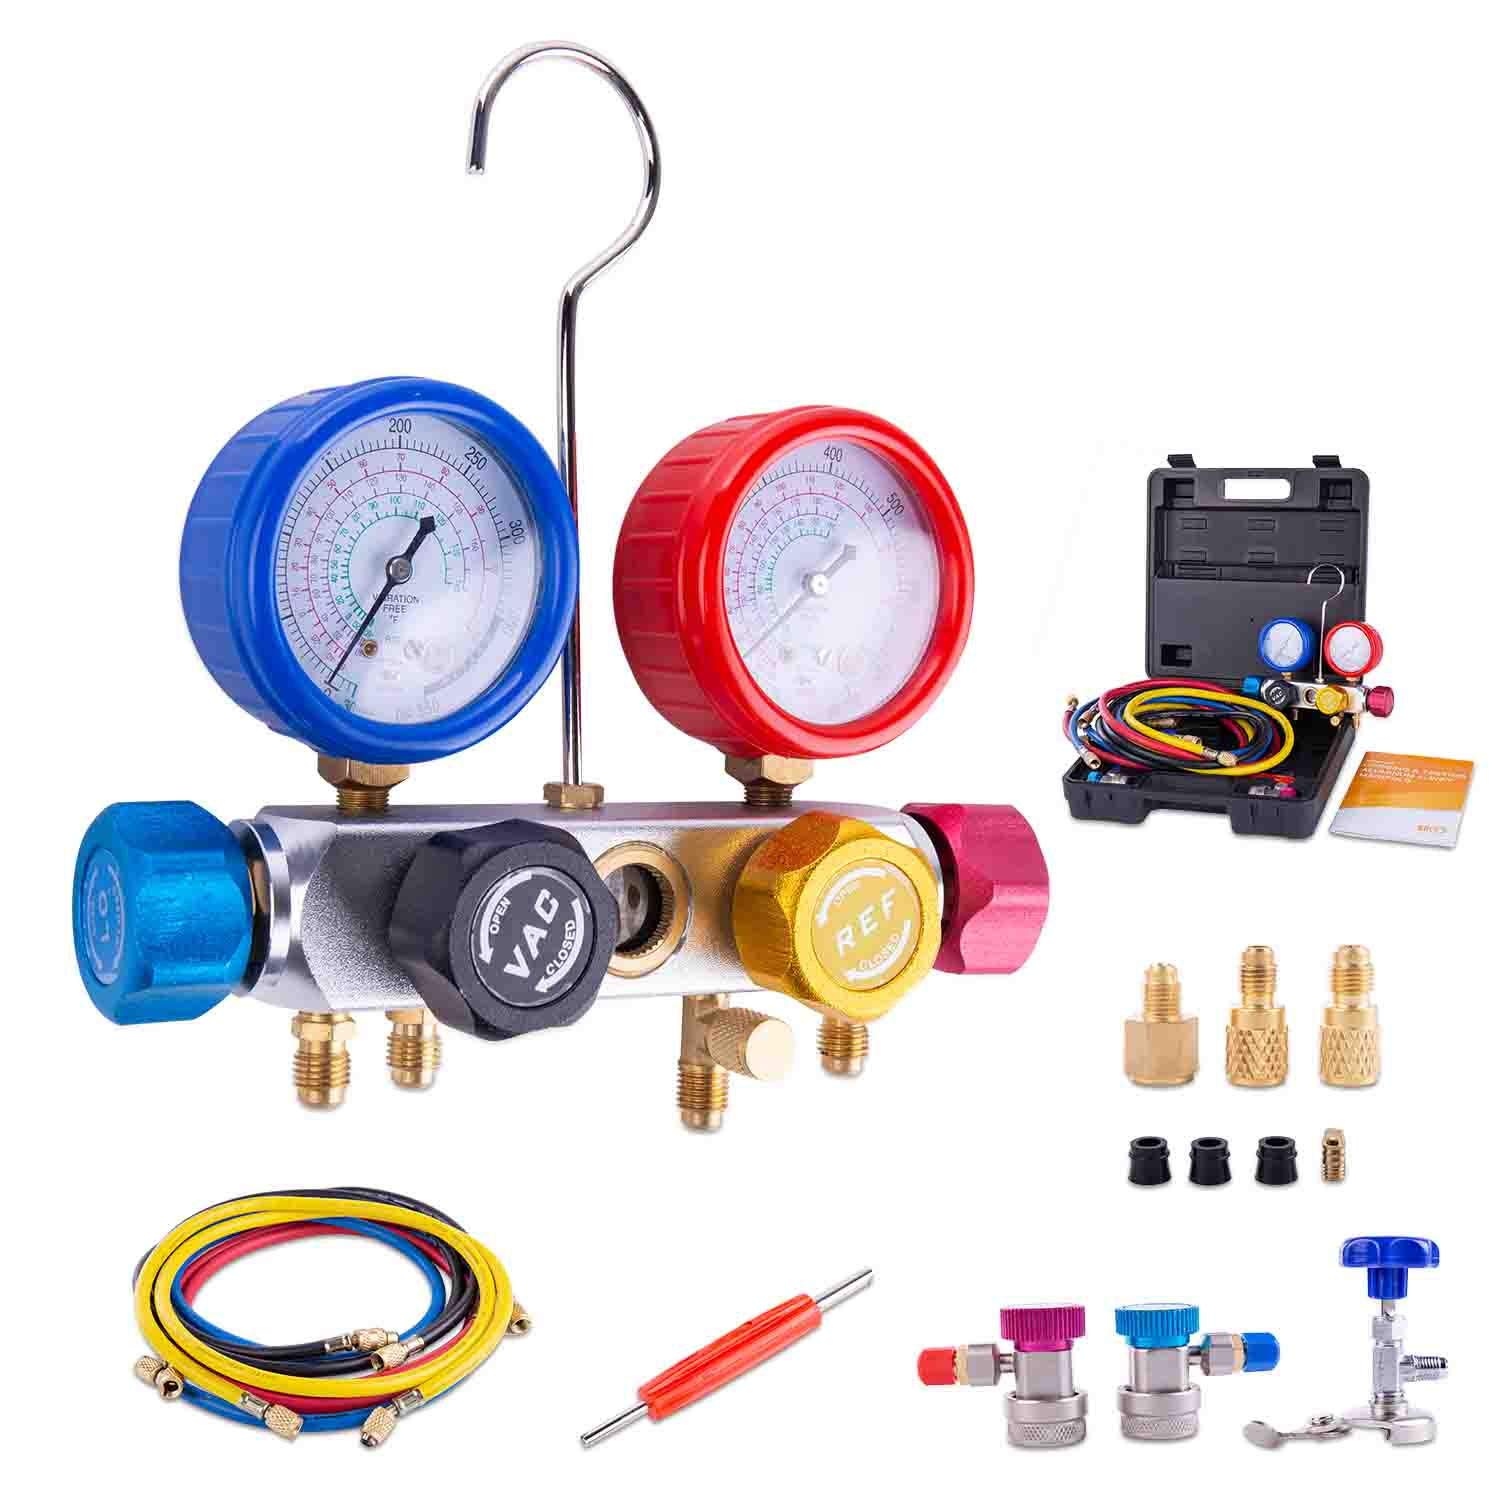 BACOENG Pro 4 Way AC Diagnostic Manifold Gauge Complete Set for R134A R410A R22, with 5FT Hose, 3 ACME Tank Adapters, Adjustable Quick Couplers and Universal Can Tap